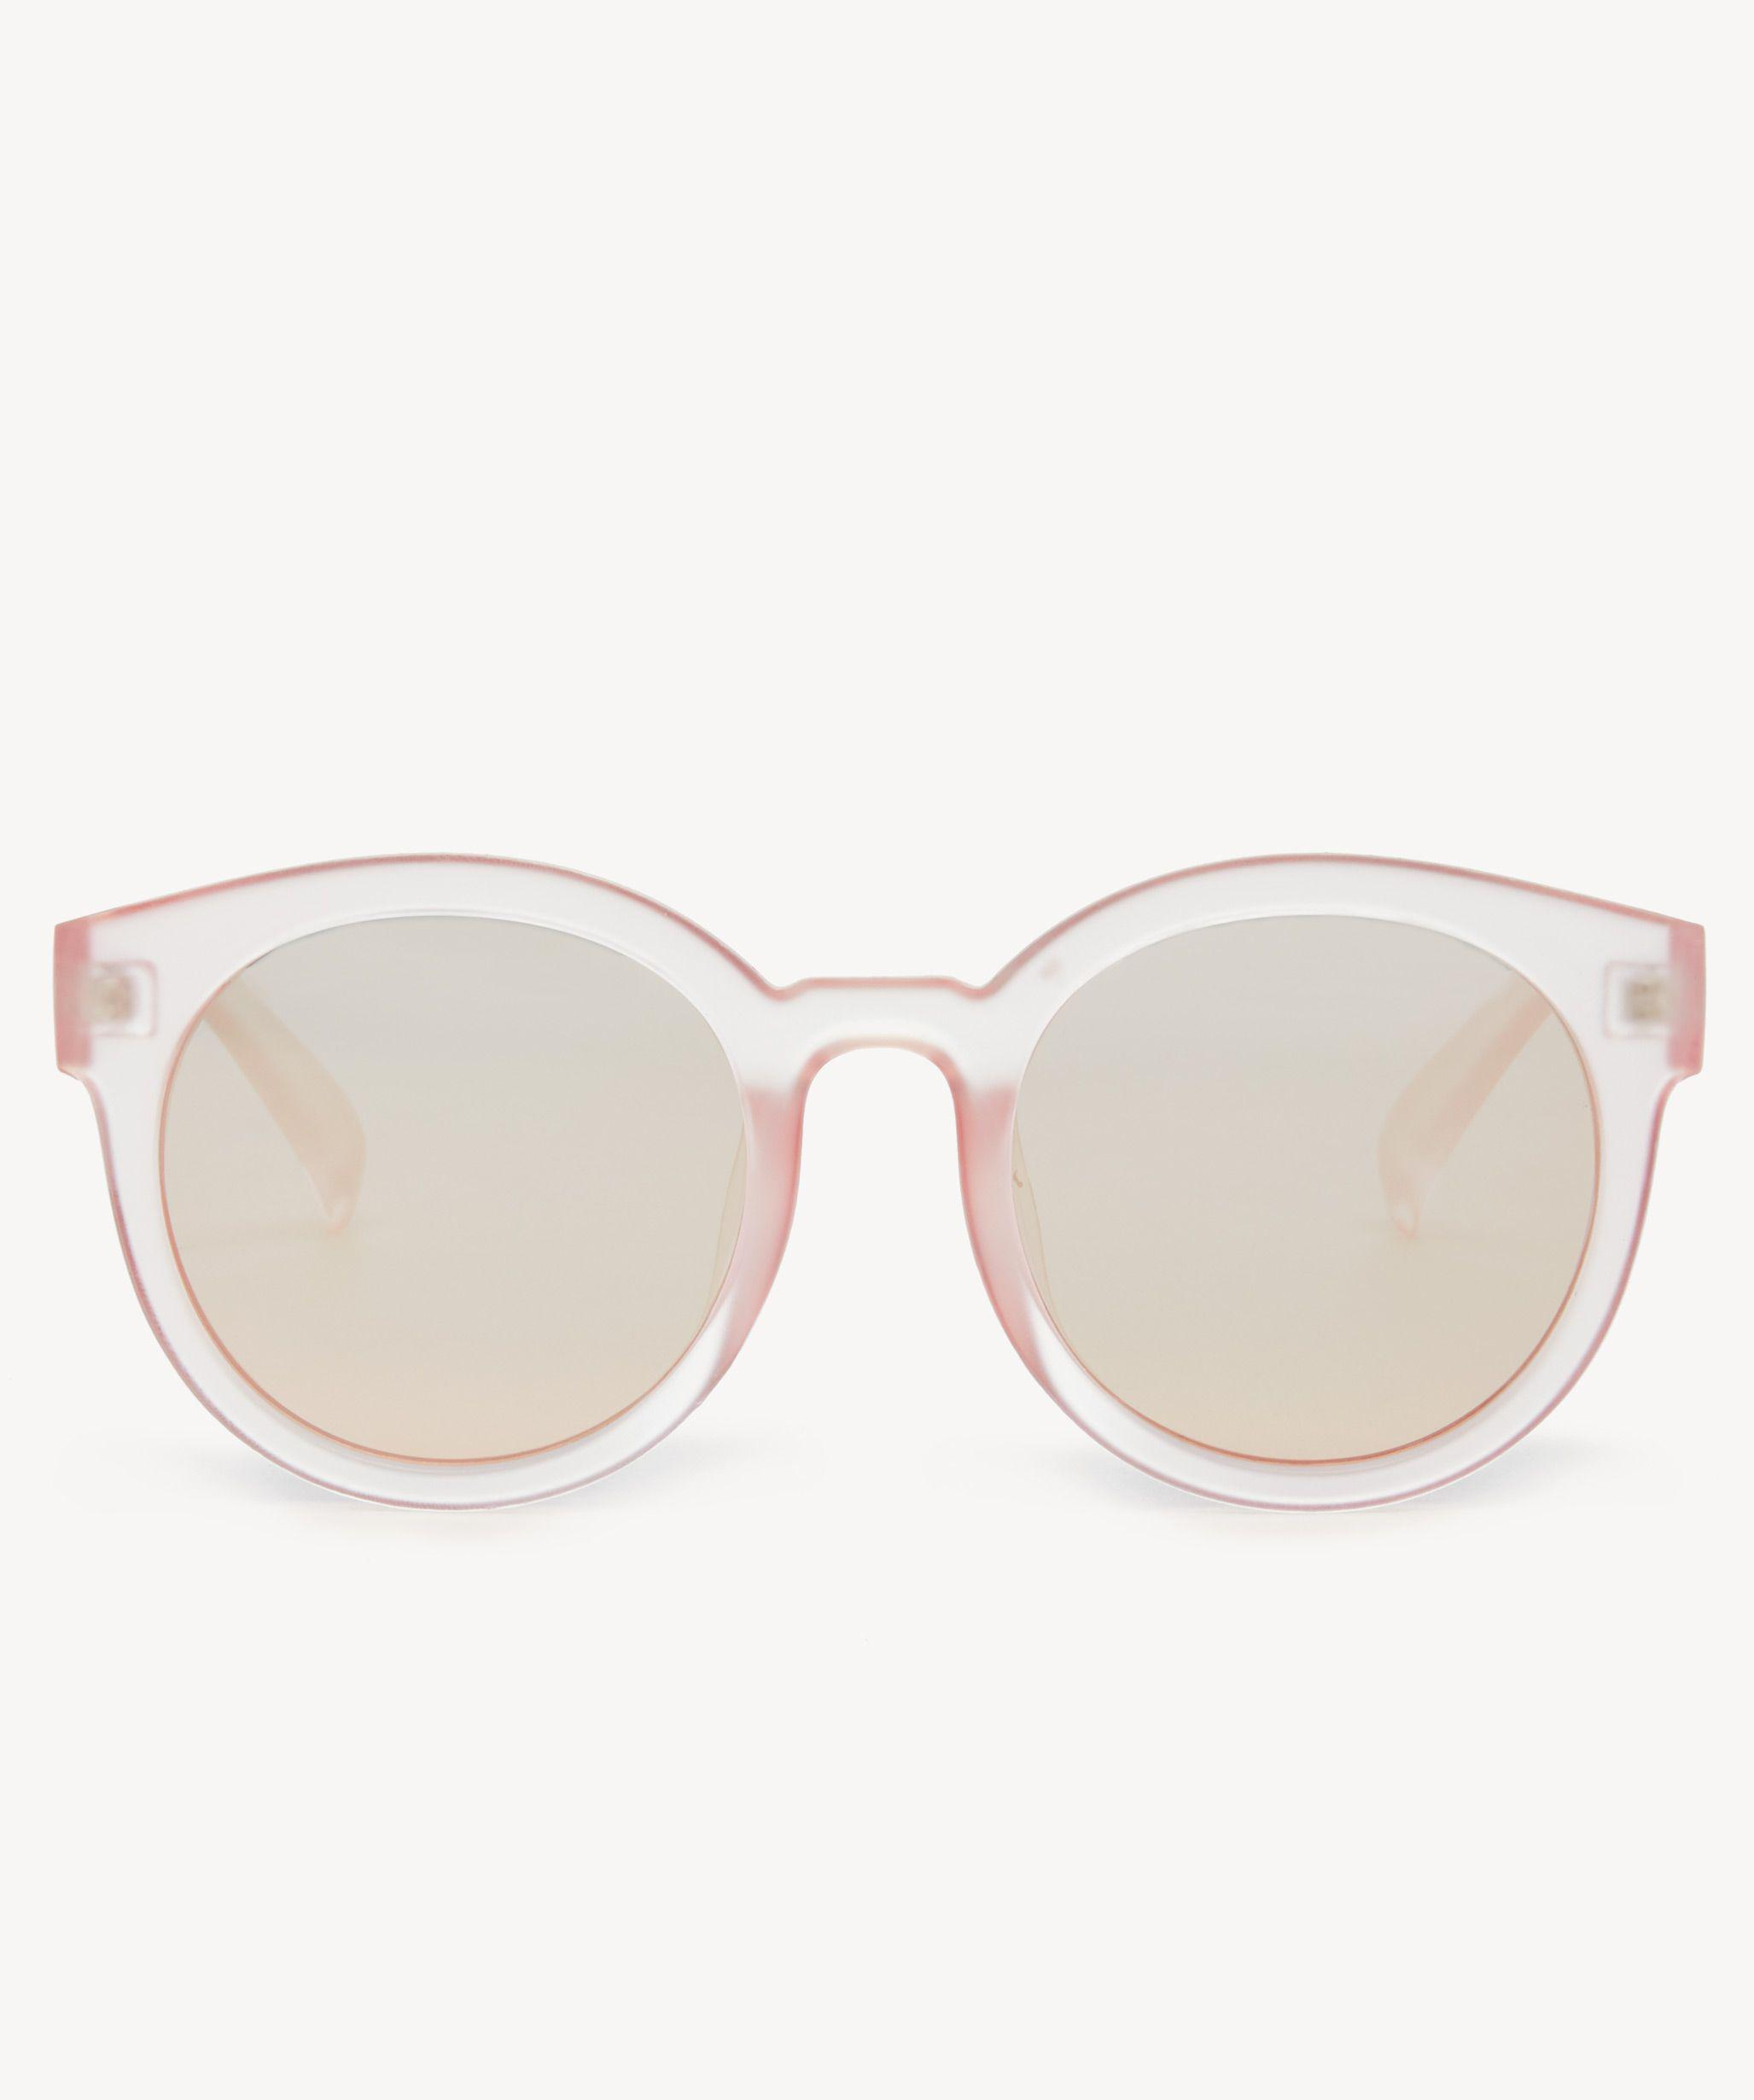 1e5fc65955d Lyst - Sole Society Janey Oversize Frosted Sunglasses in Pink